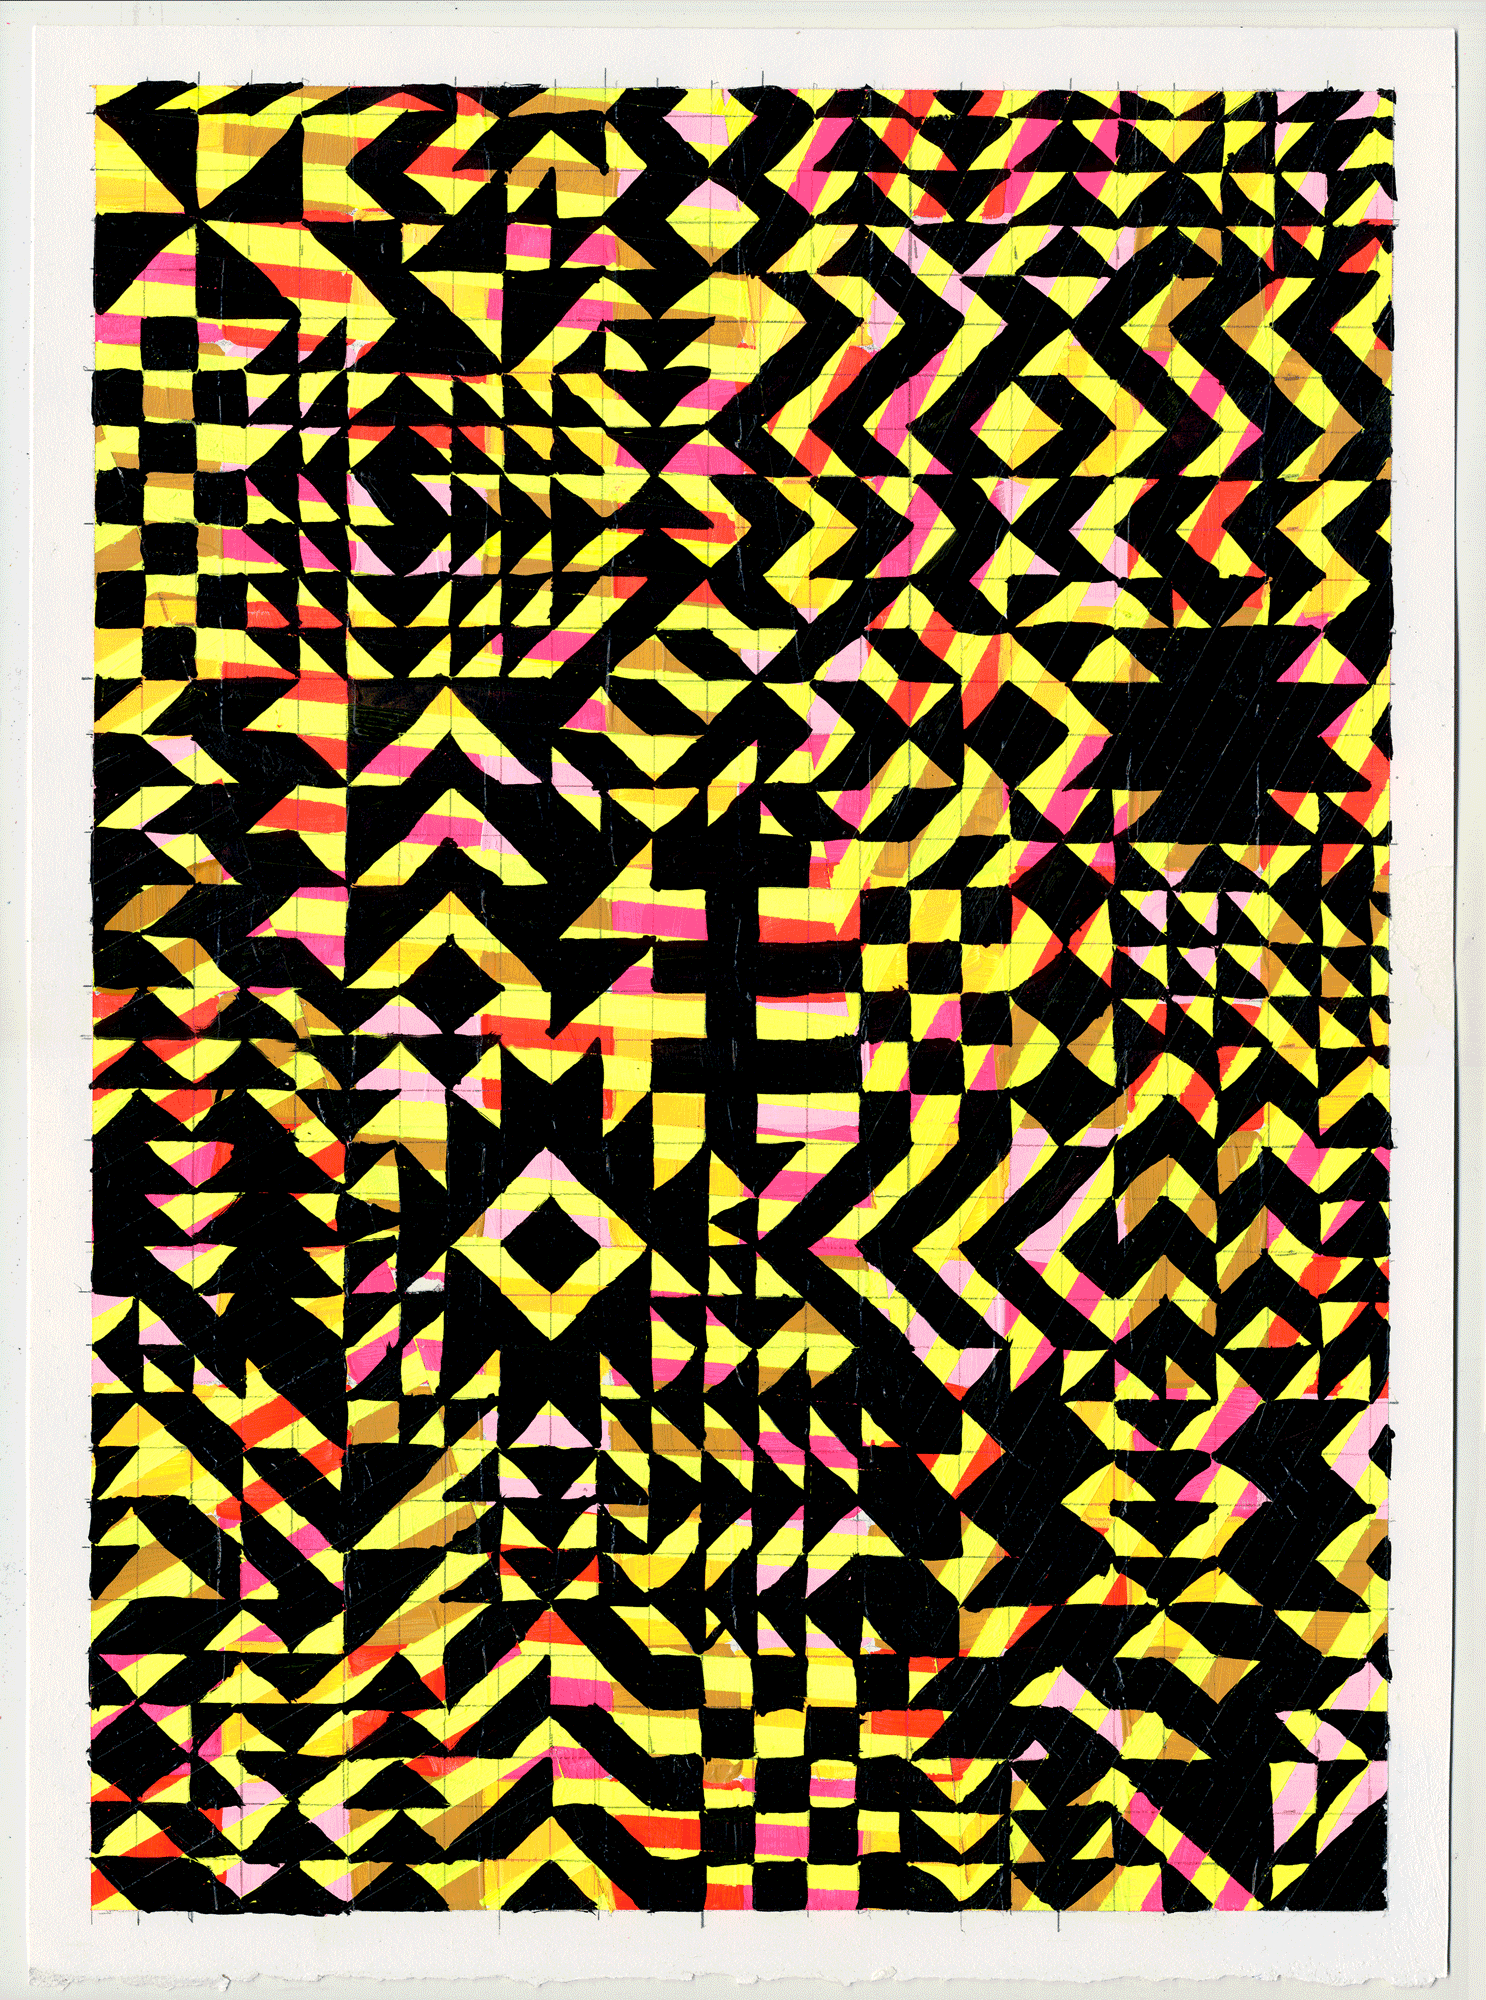 "NY1711 15"" X 11"", acrylic on paper, 2017  available at Etsy   these are the pattern based ladies i mentioned. this grrrl went a little off the rails & she wasn't too interested in sticking to 1 pattern."